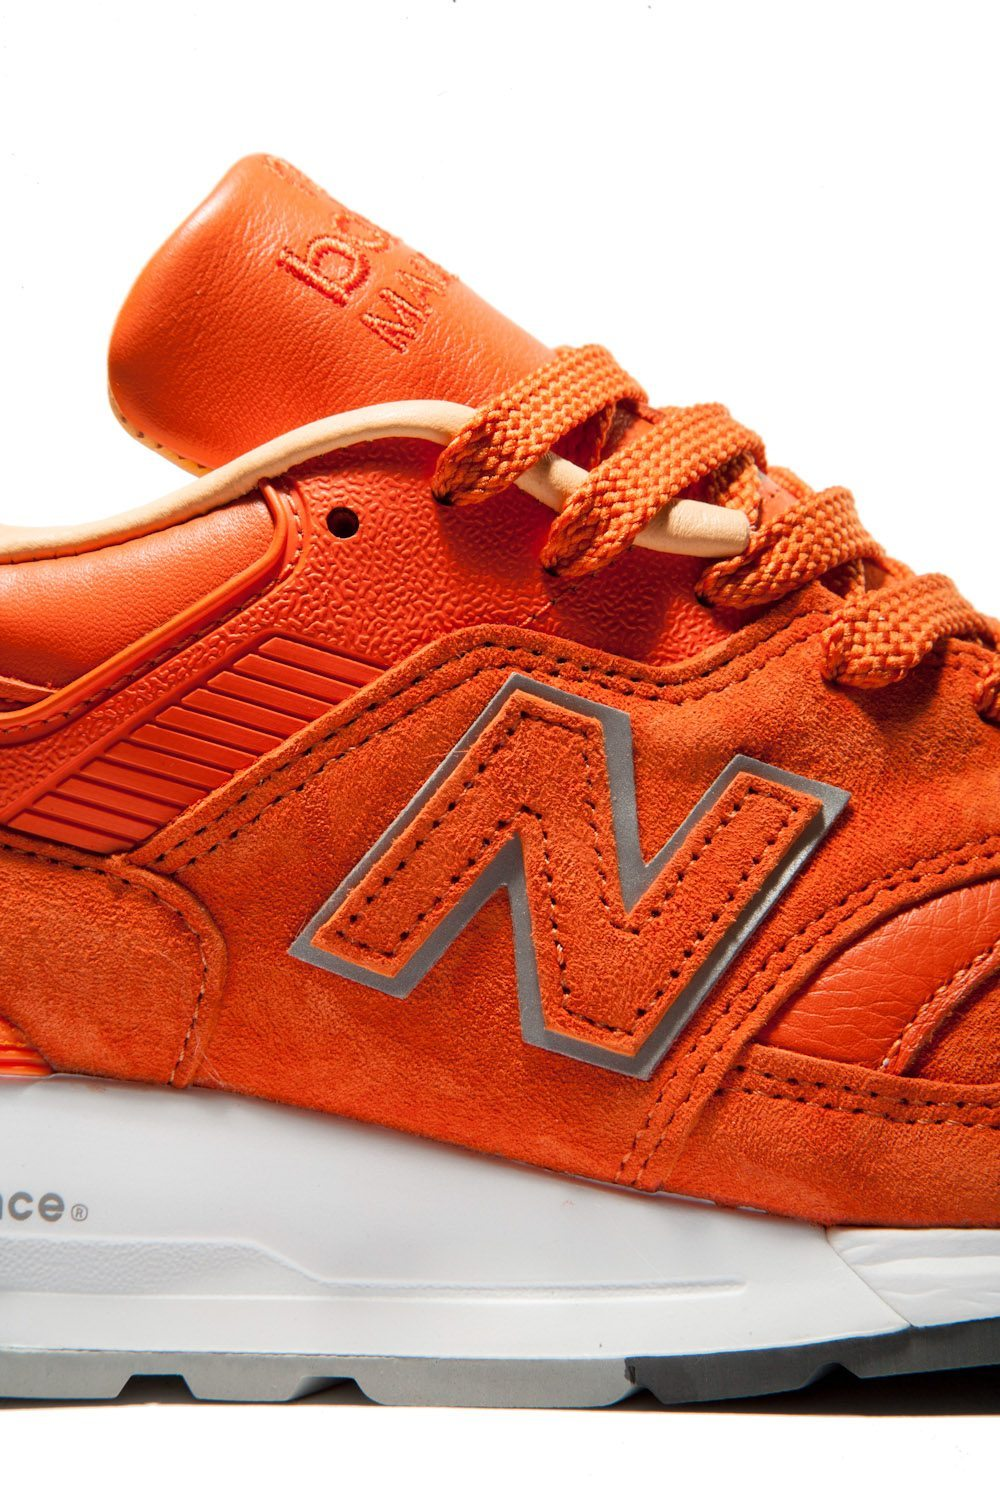 Concepts x New Balance 997 Luxury Goods 5